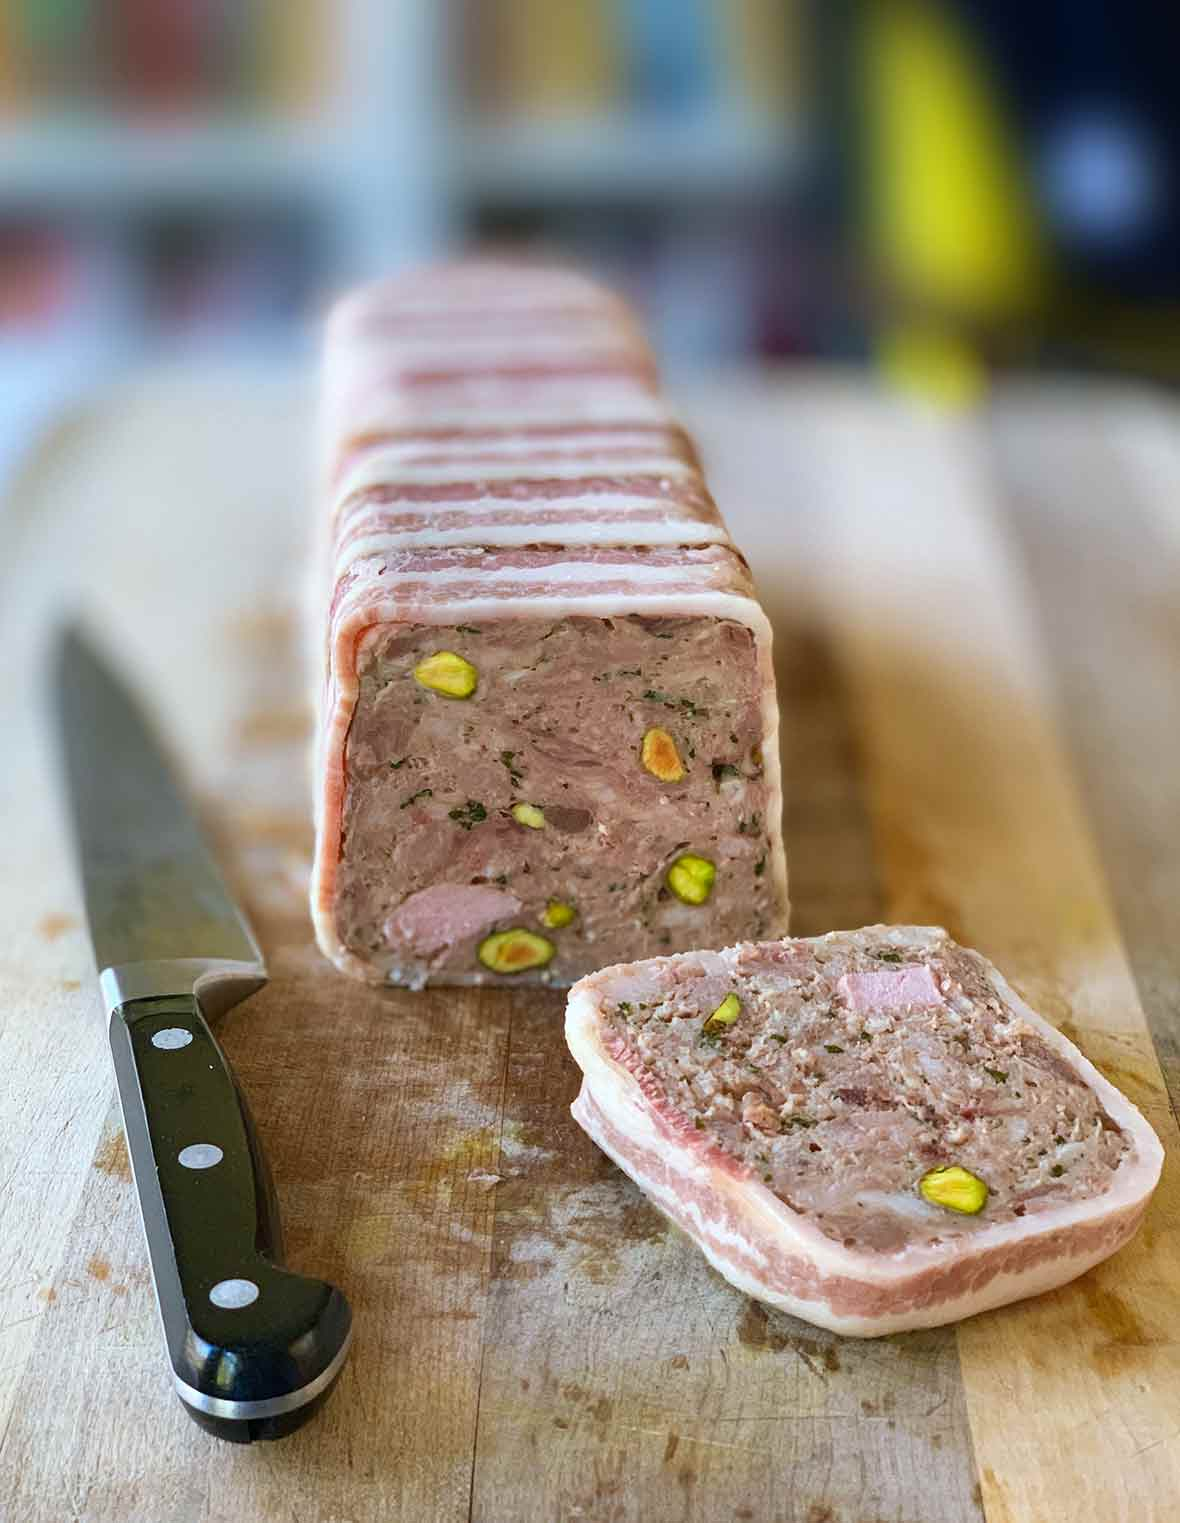 A terrine of country pate with one slice cut and resting on a wooden cutting board with a knife beside it